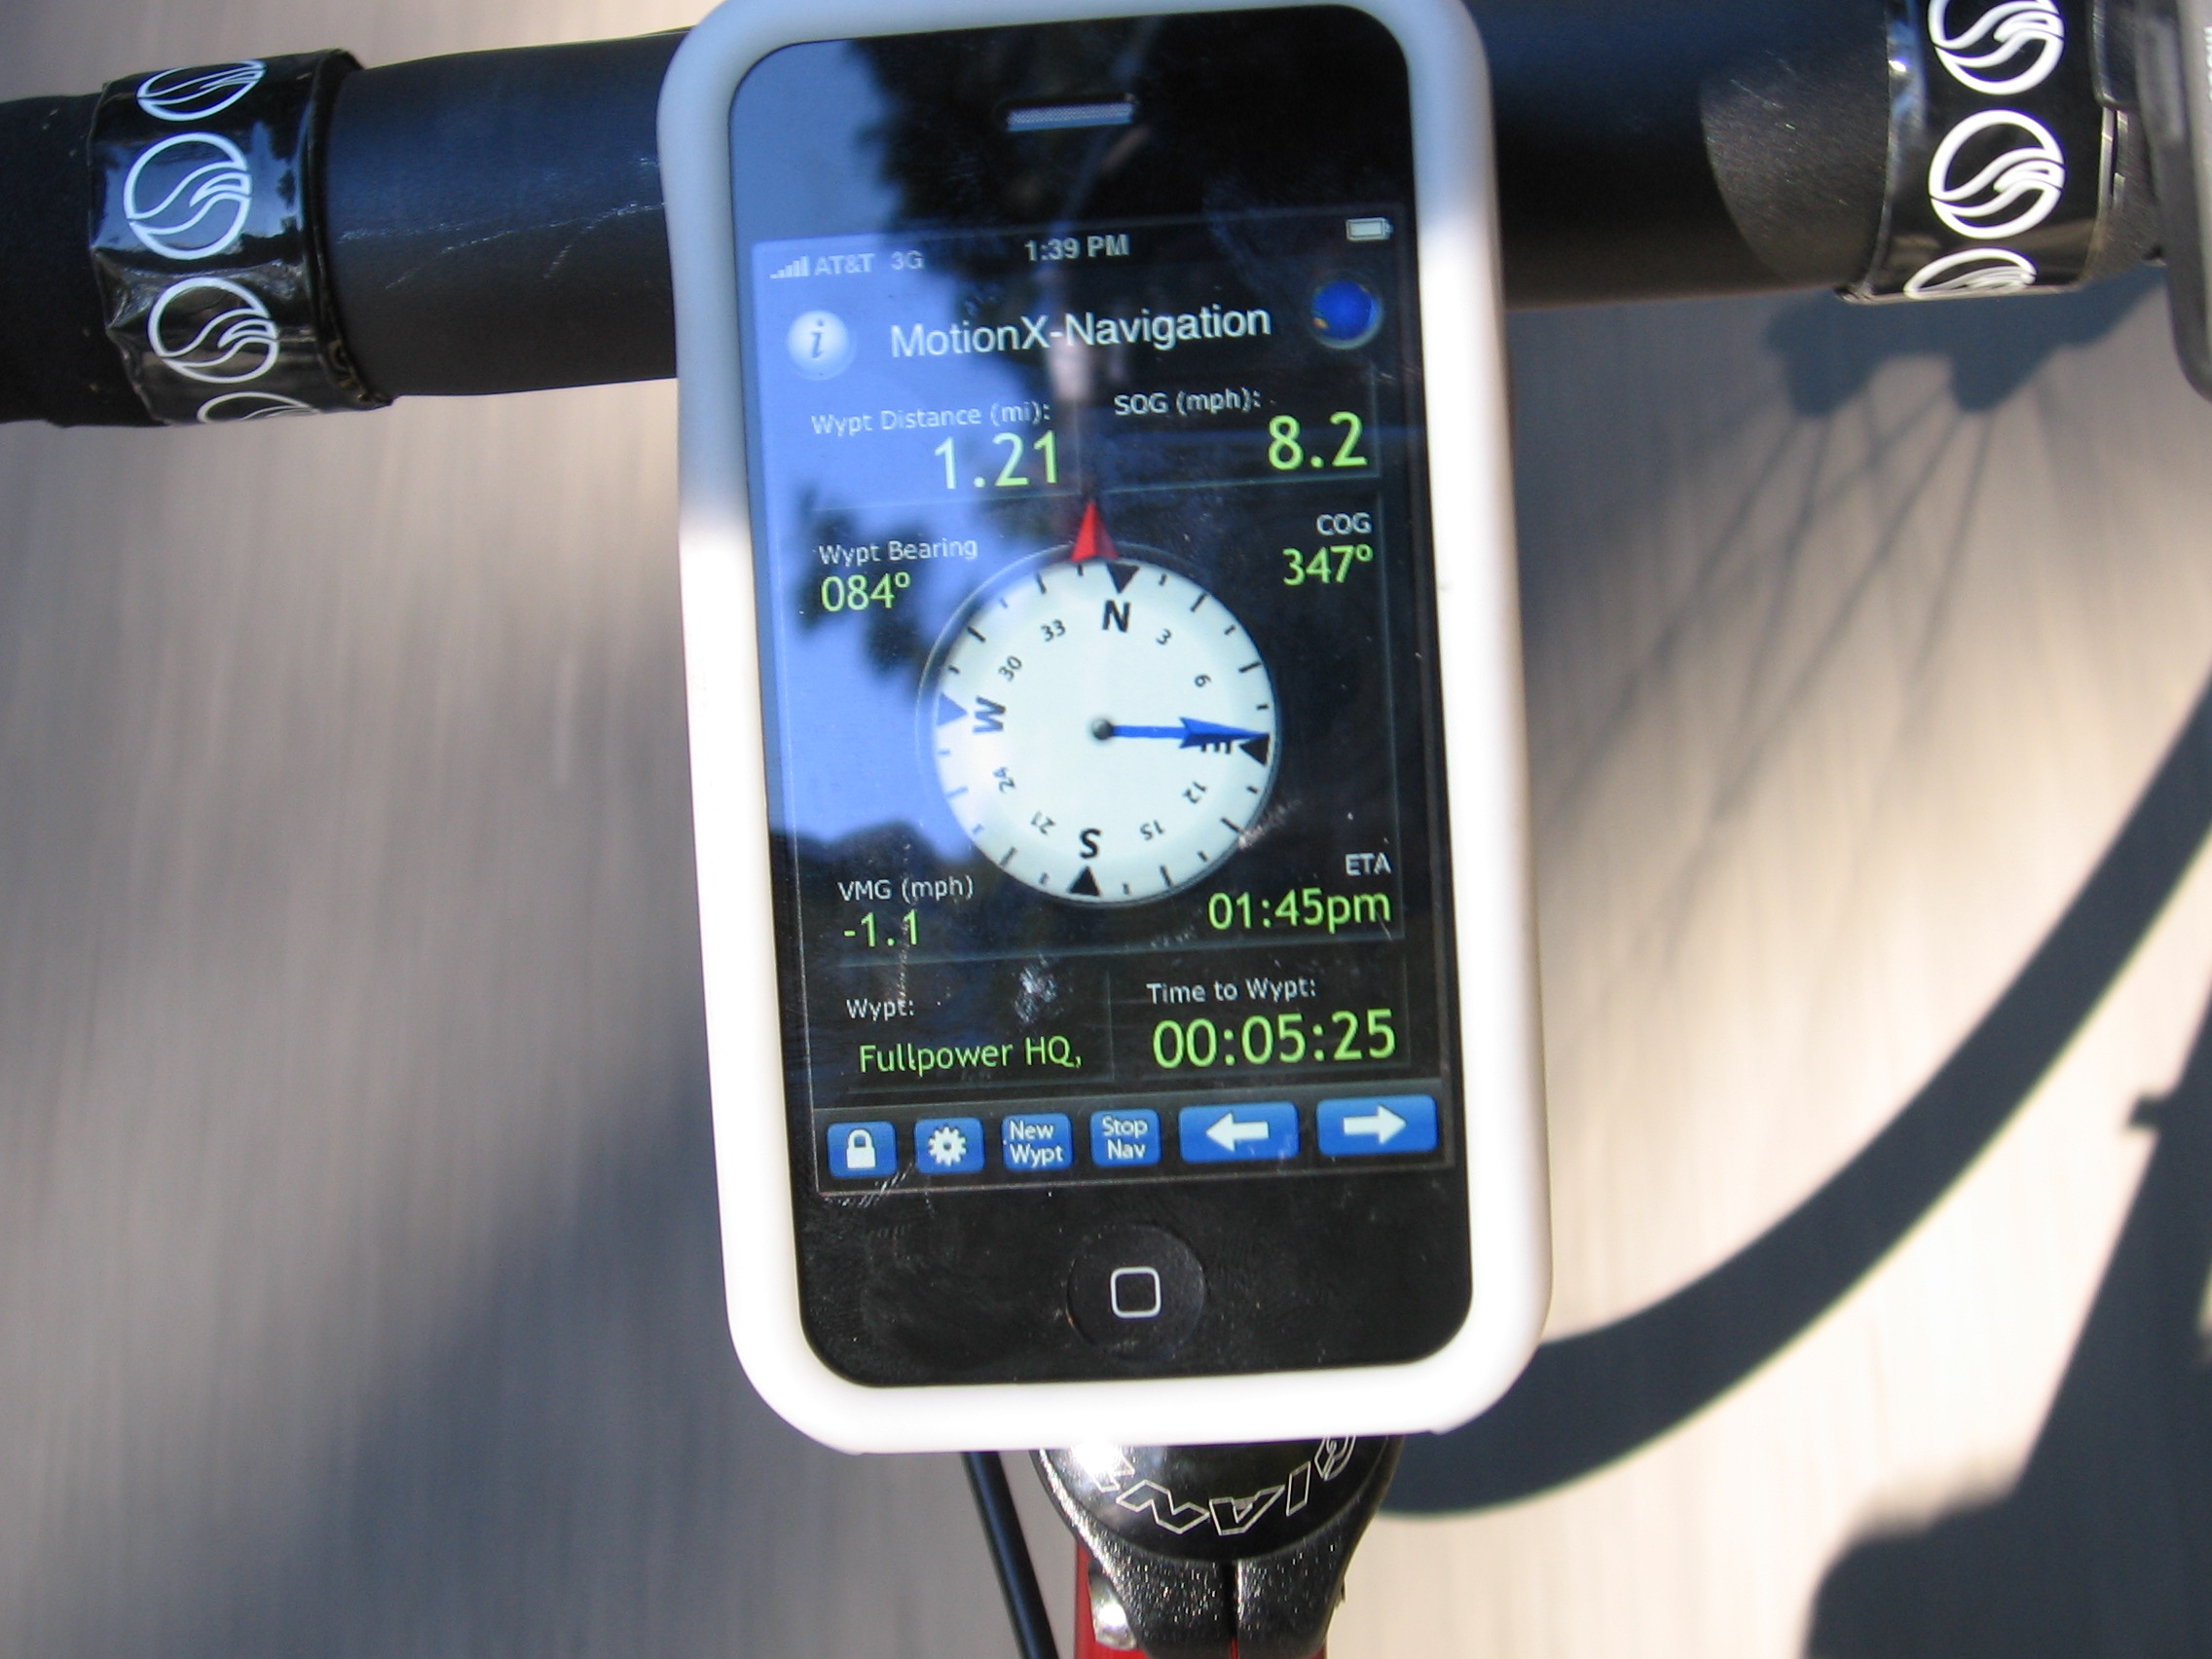 http://commons.wikipedia.org/wiki/File:GPS_on_smartphone_cycling.JPG